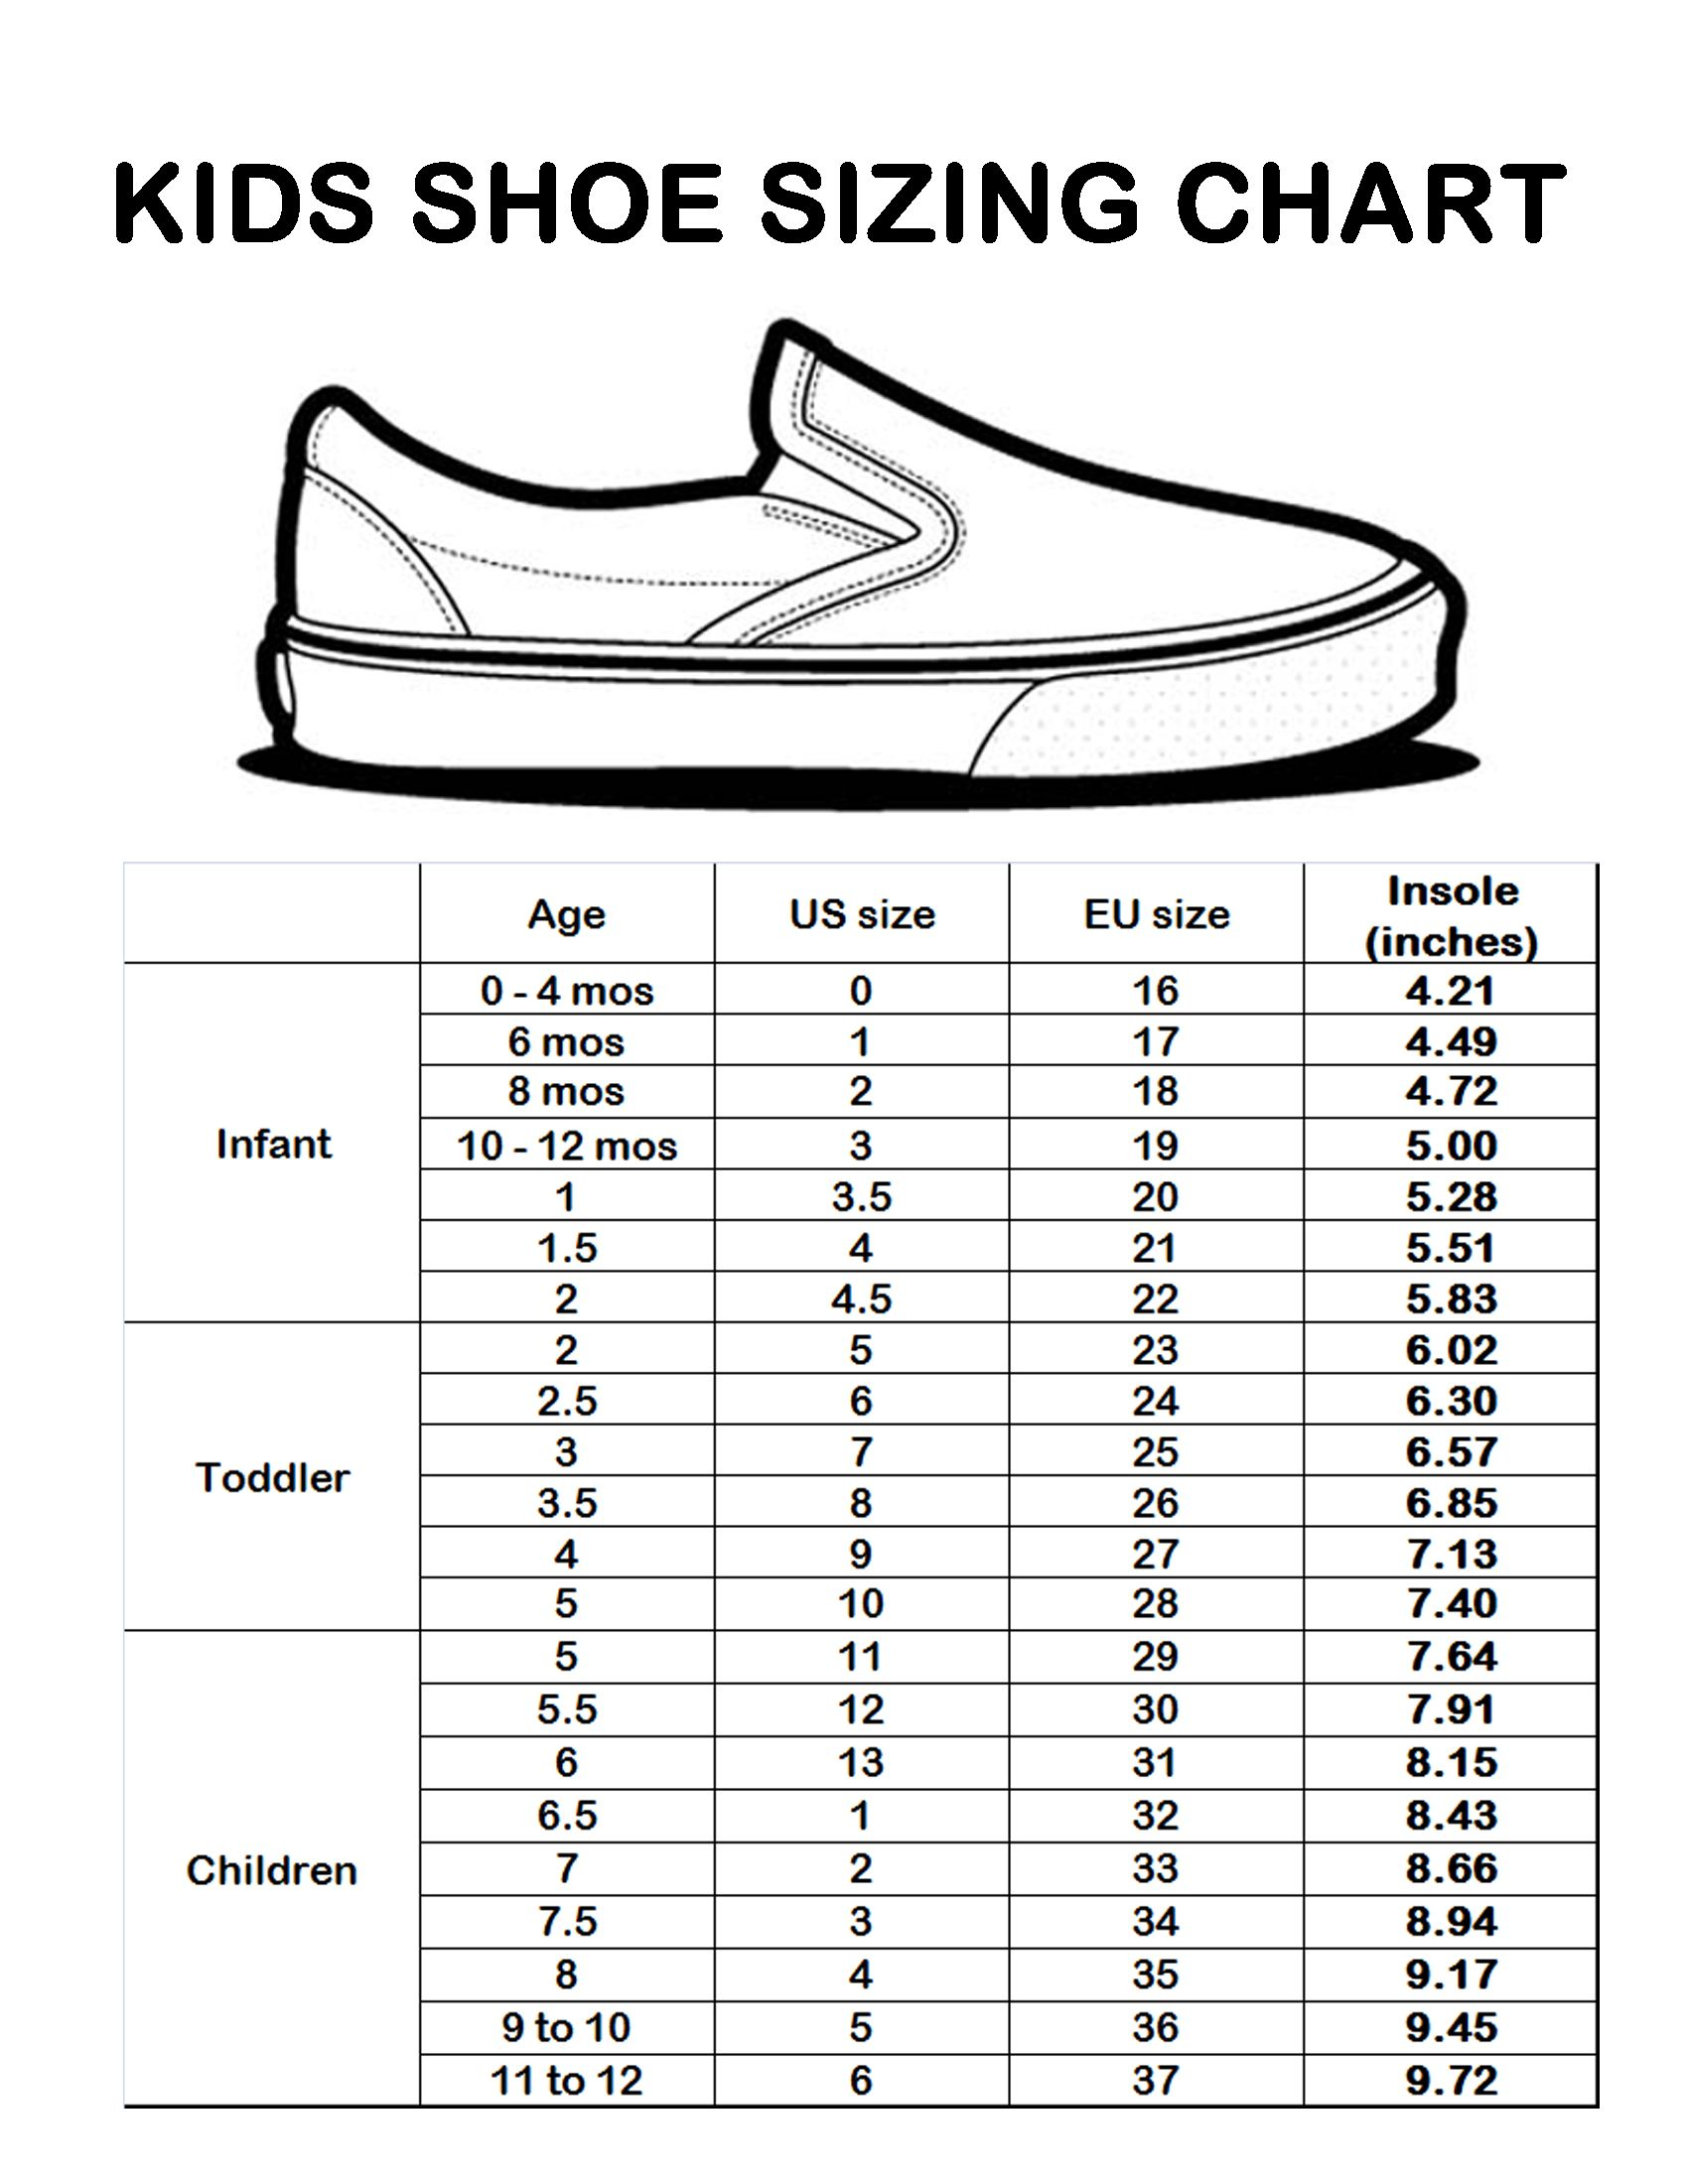 How Do I Find My Child Shoe Size